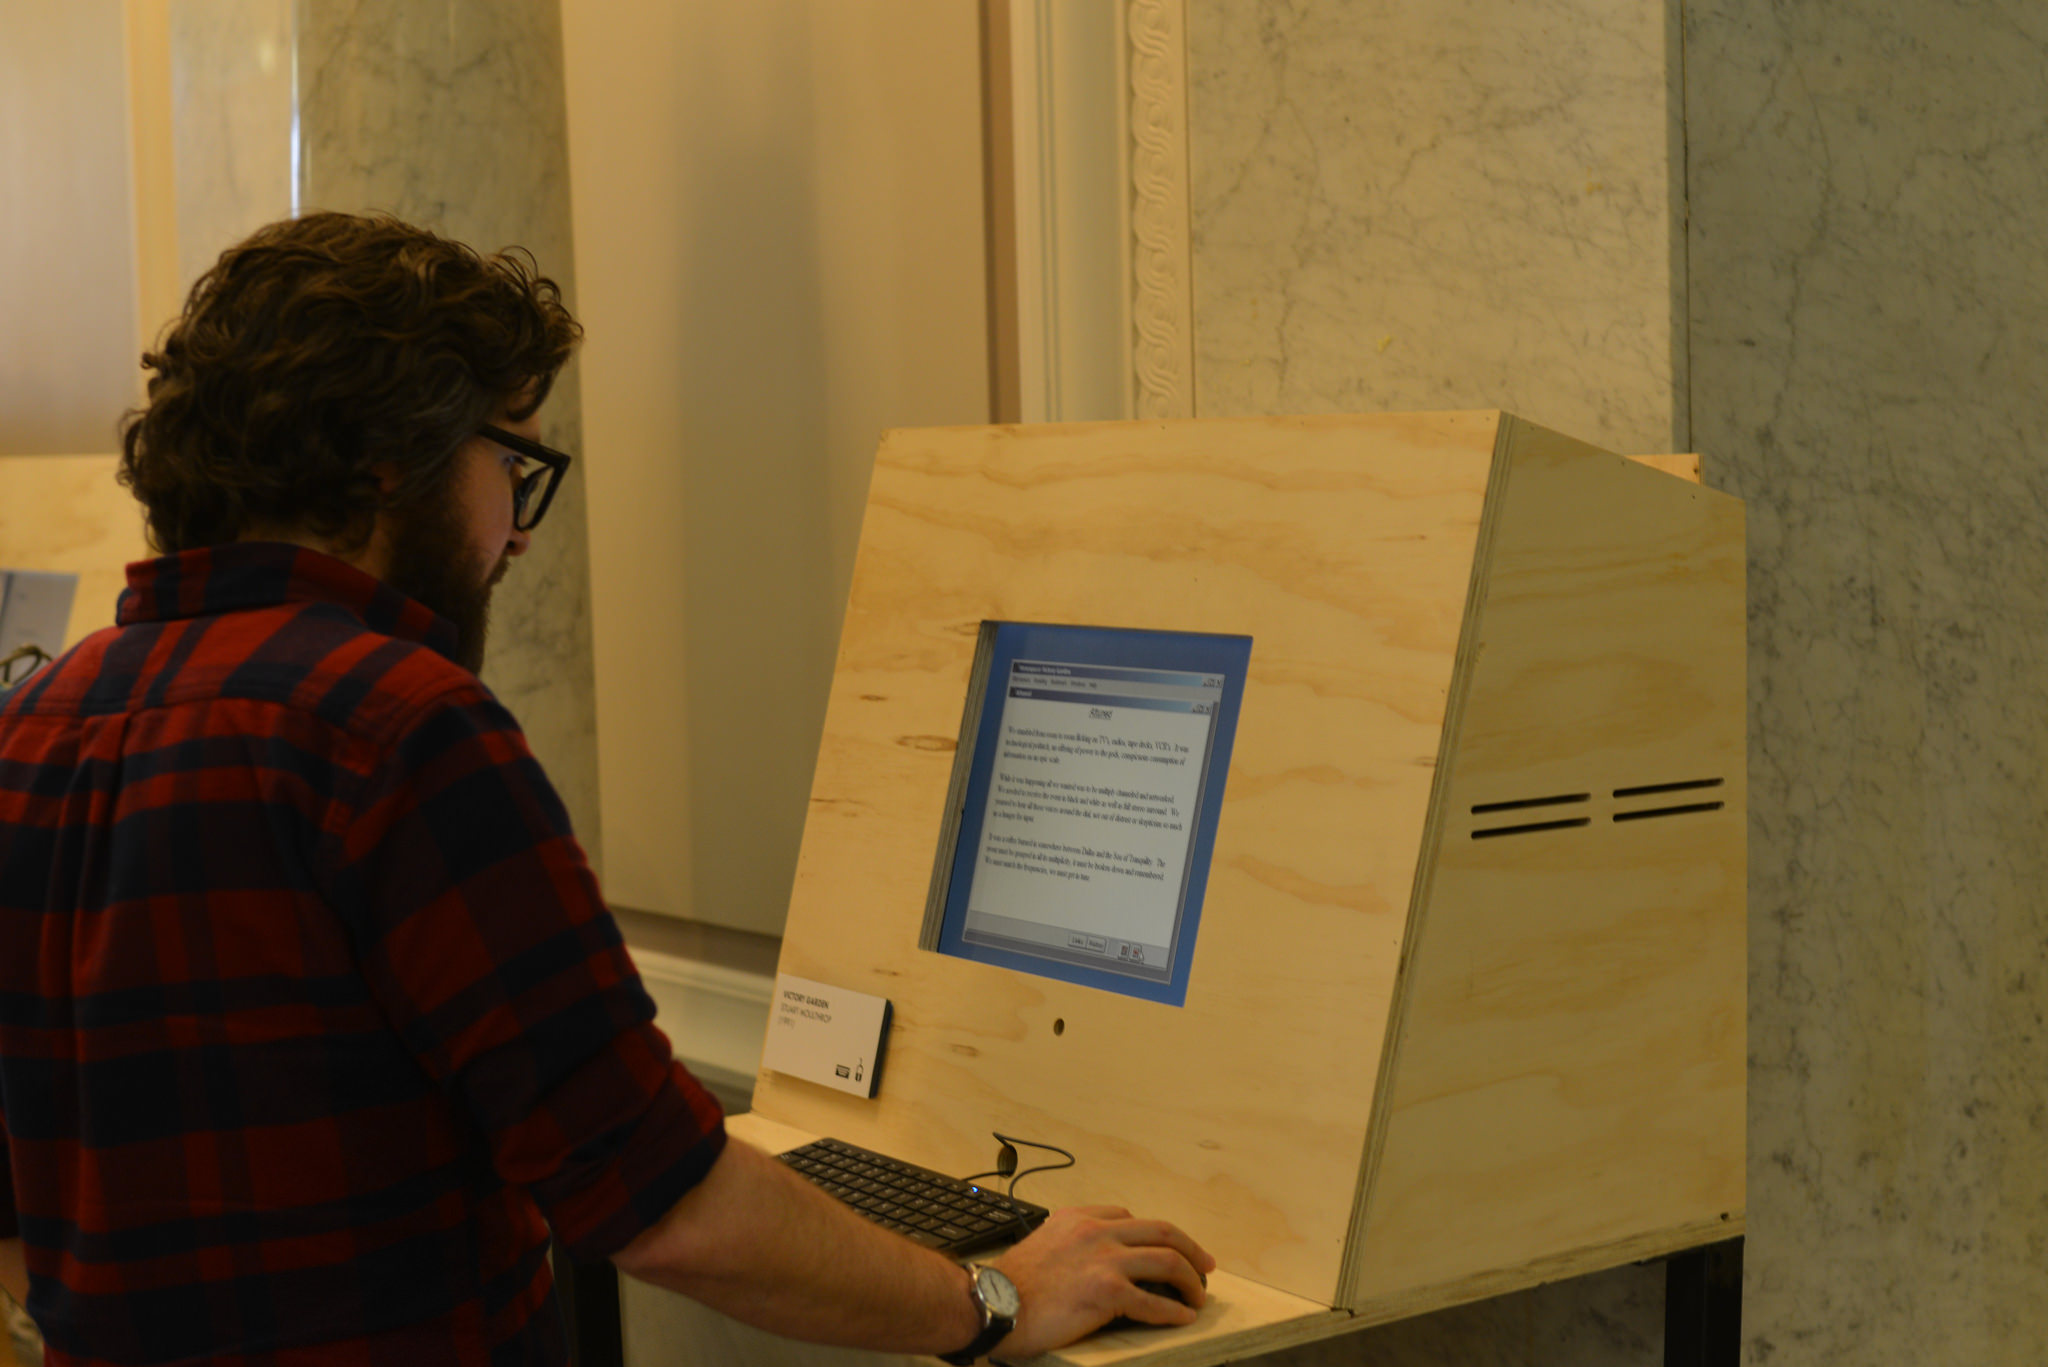 No Legacy || Literatura Electronica Exhibition Opening on 3/11/2016 in the Morrison Reading Room of Doe Library. Featuring electronic literature poetry and readings. Credit: BCNM